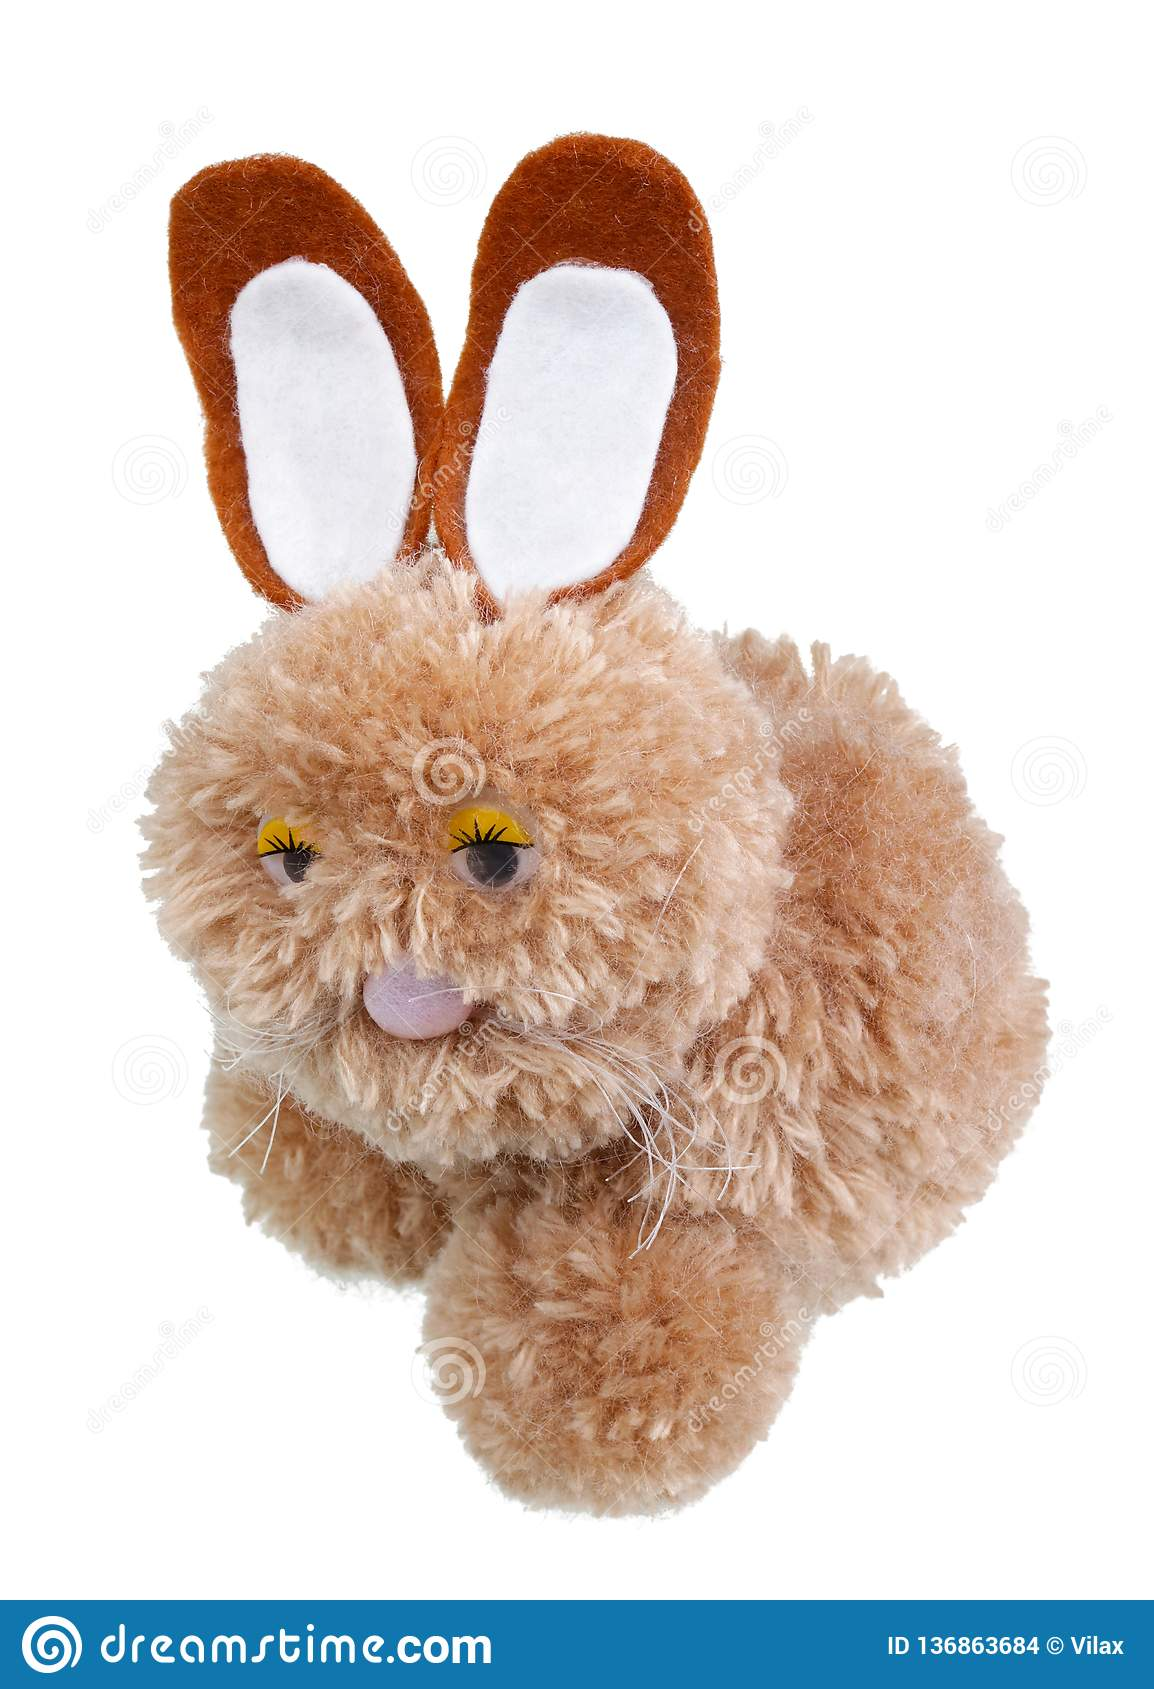 A very sad homemade Easter bunny made of woolen threads isolated